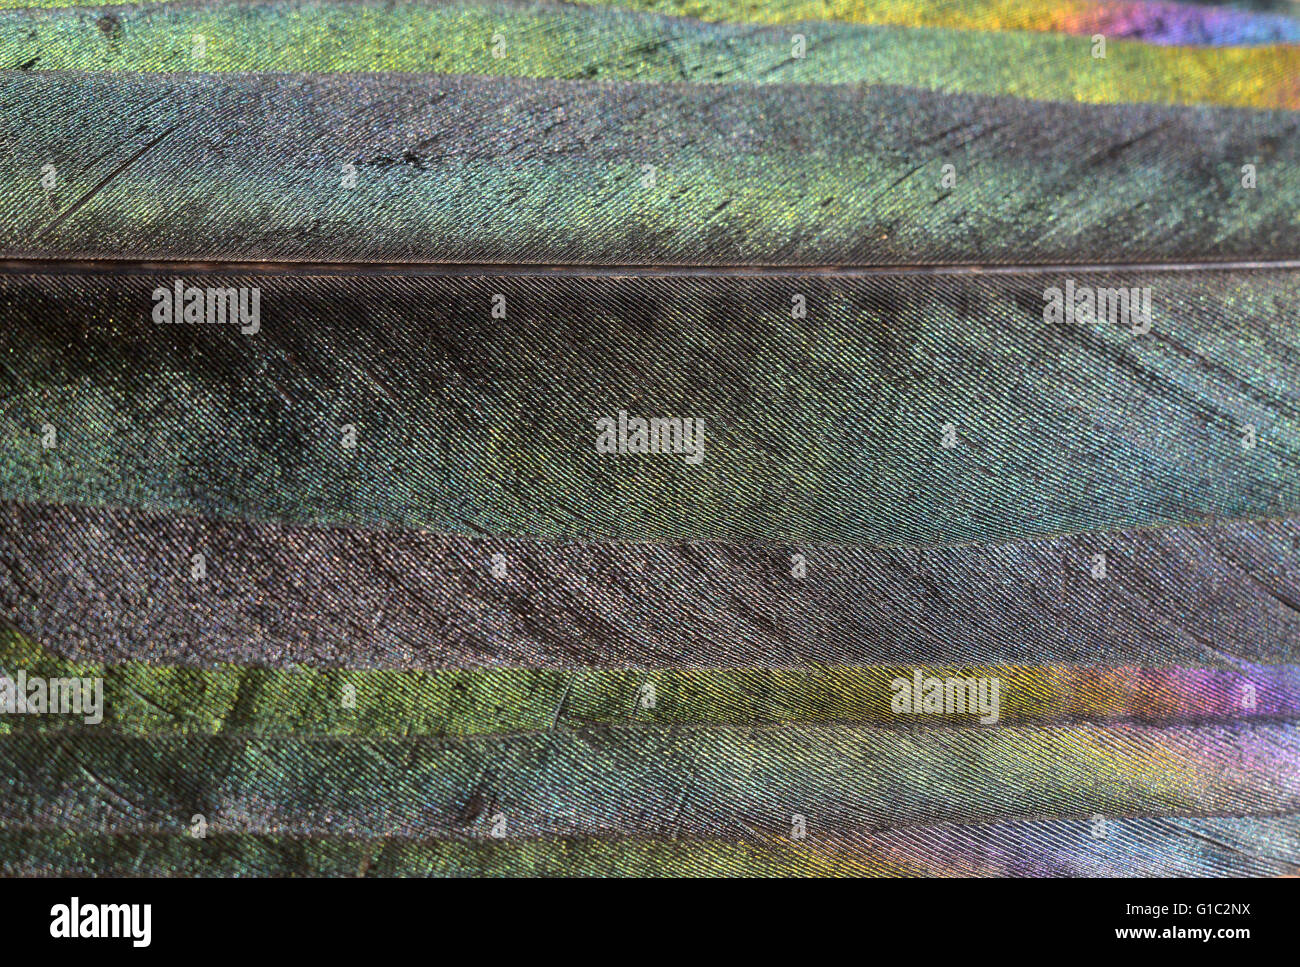 Close up of iridescence on magpie feathers - Stock Image